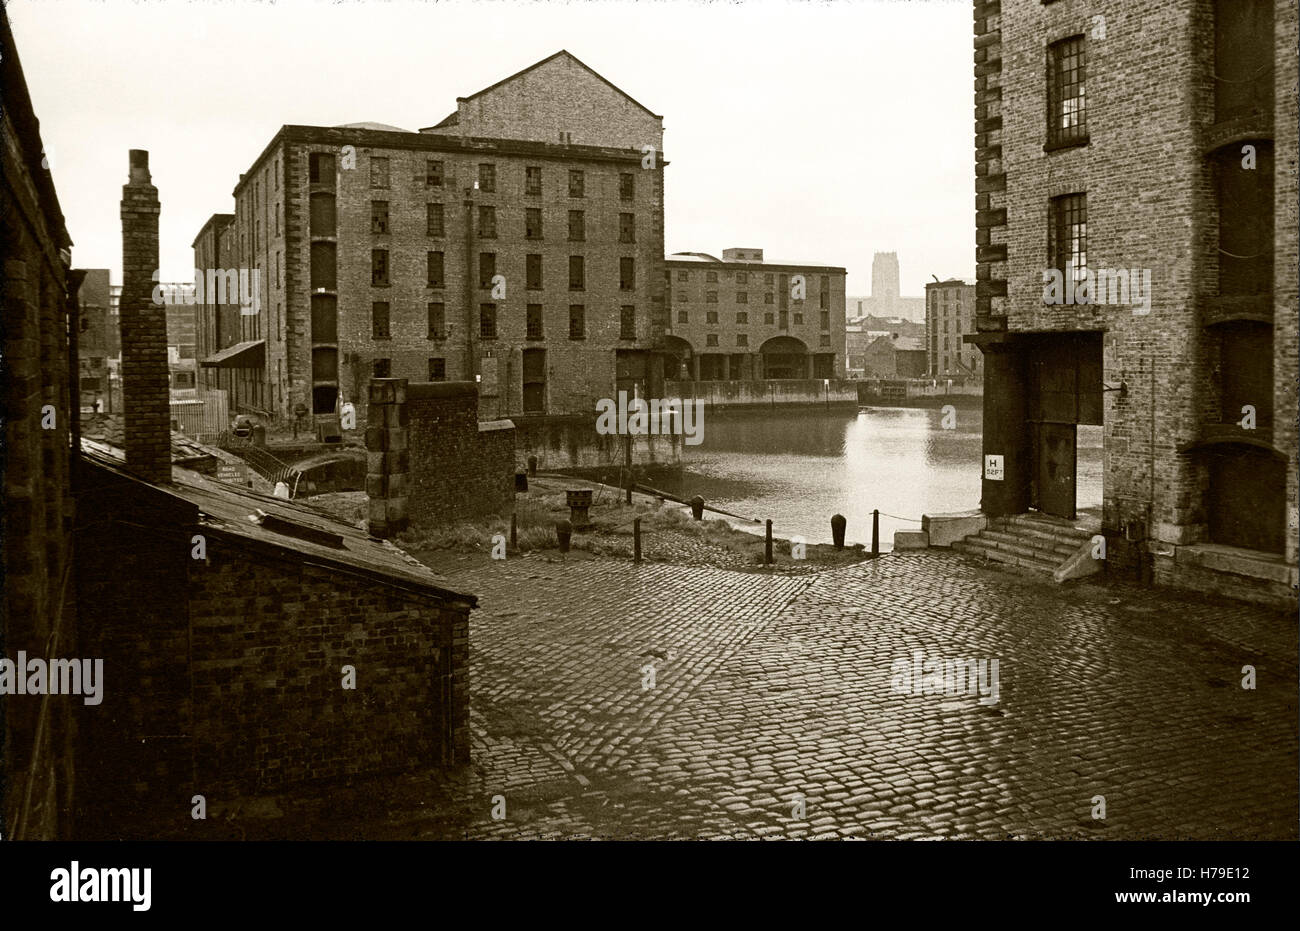 The Albert Dock, designed by Jesse Hartley,  was opened in 1846, was the first structure in Britain to be built - Stock Image